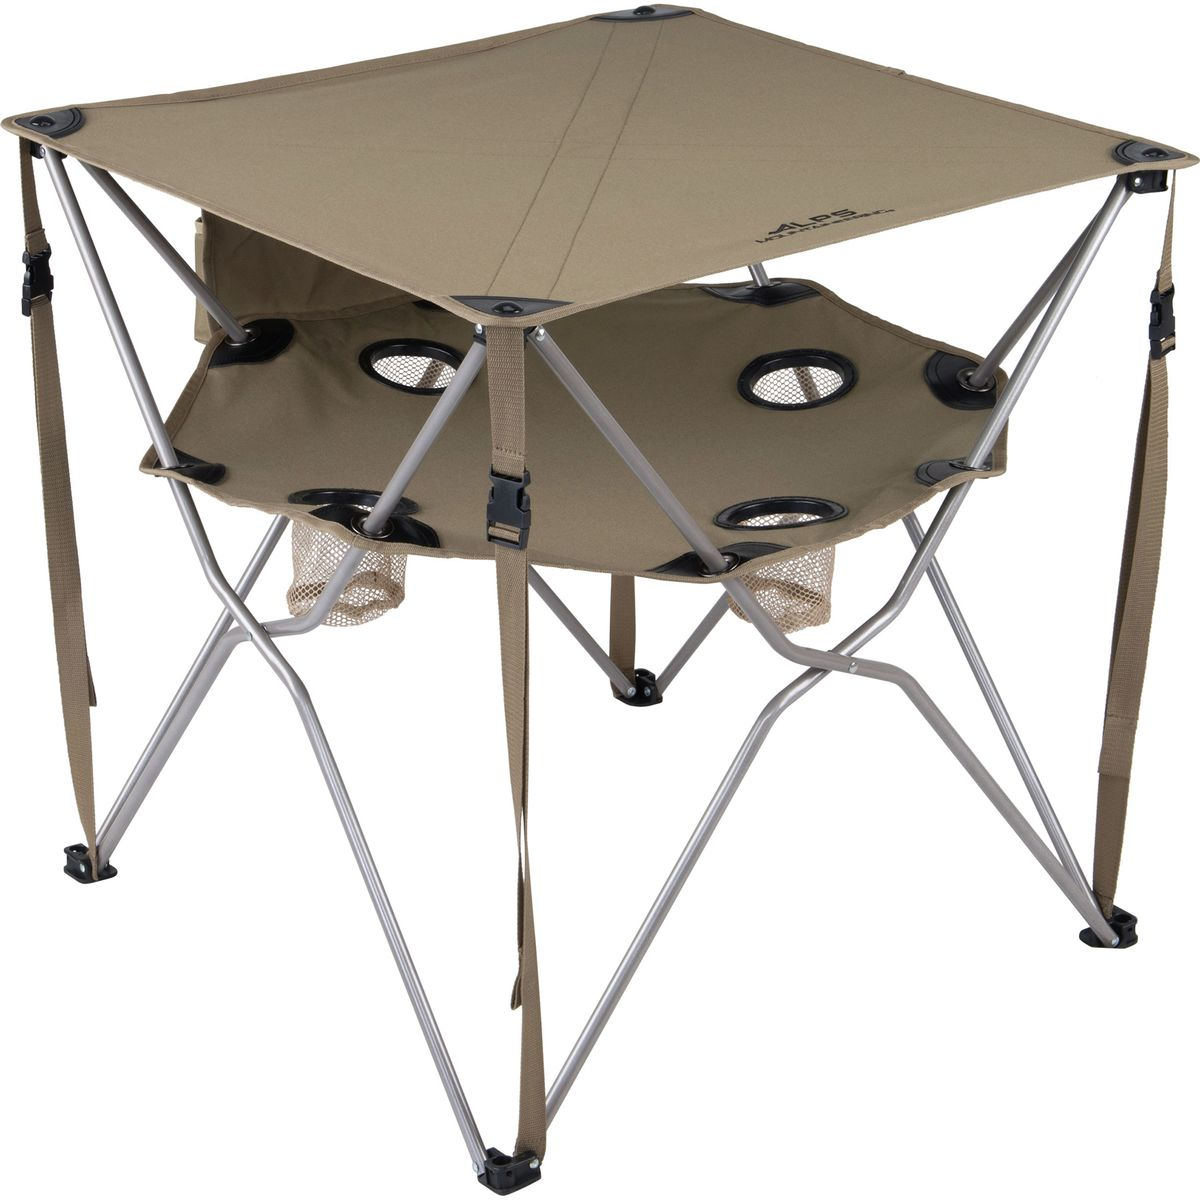 ALPS Mountaineering Lunar Table Khaki, One Size